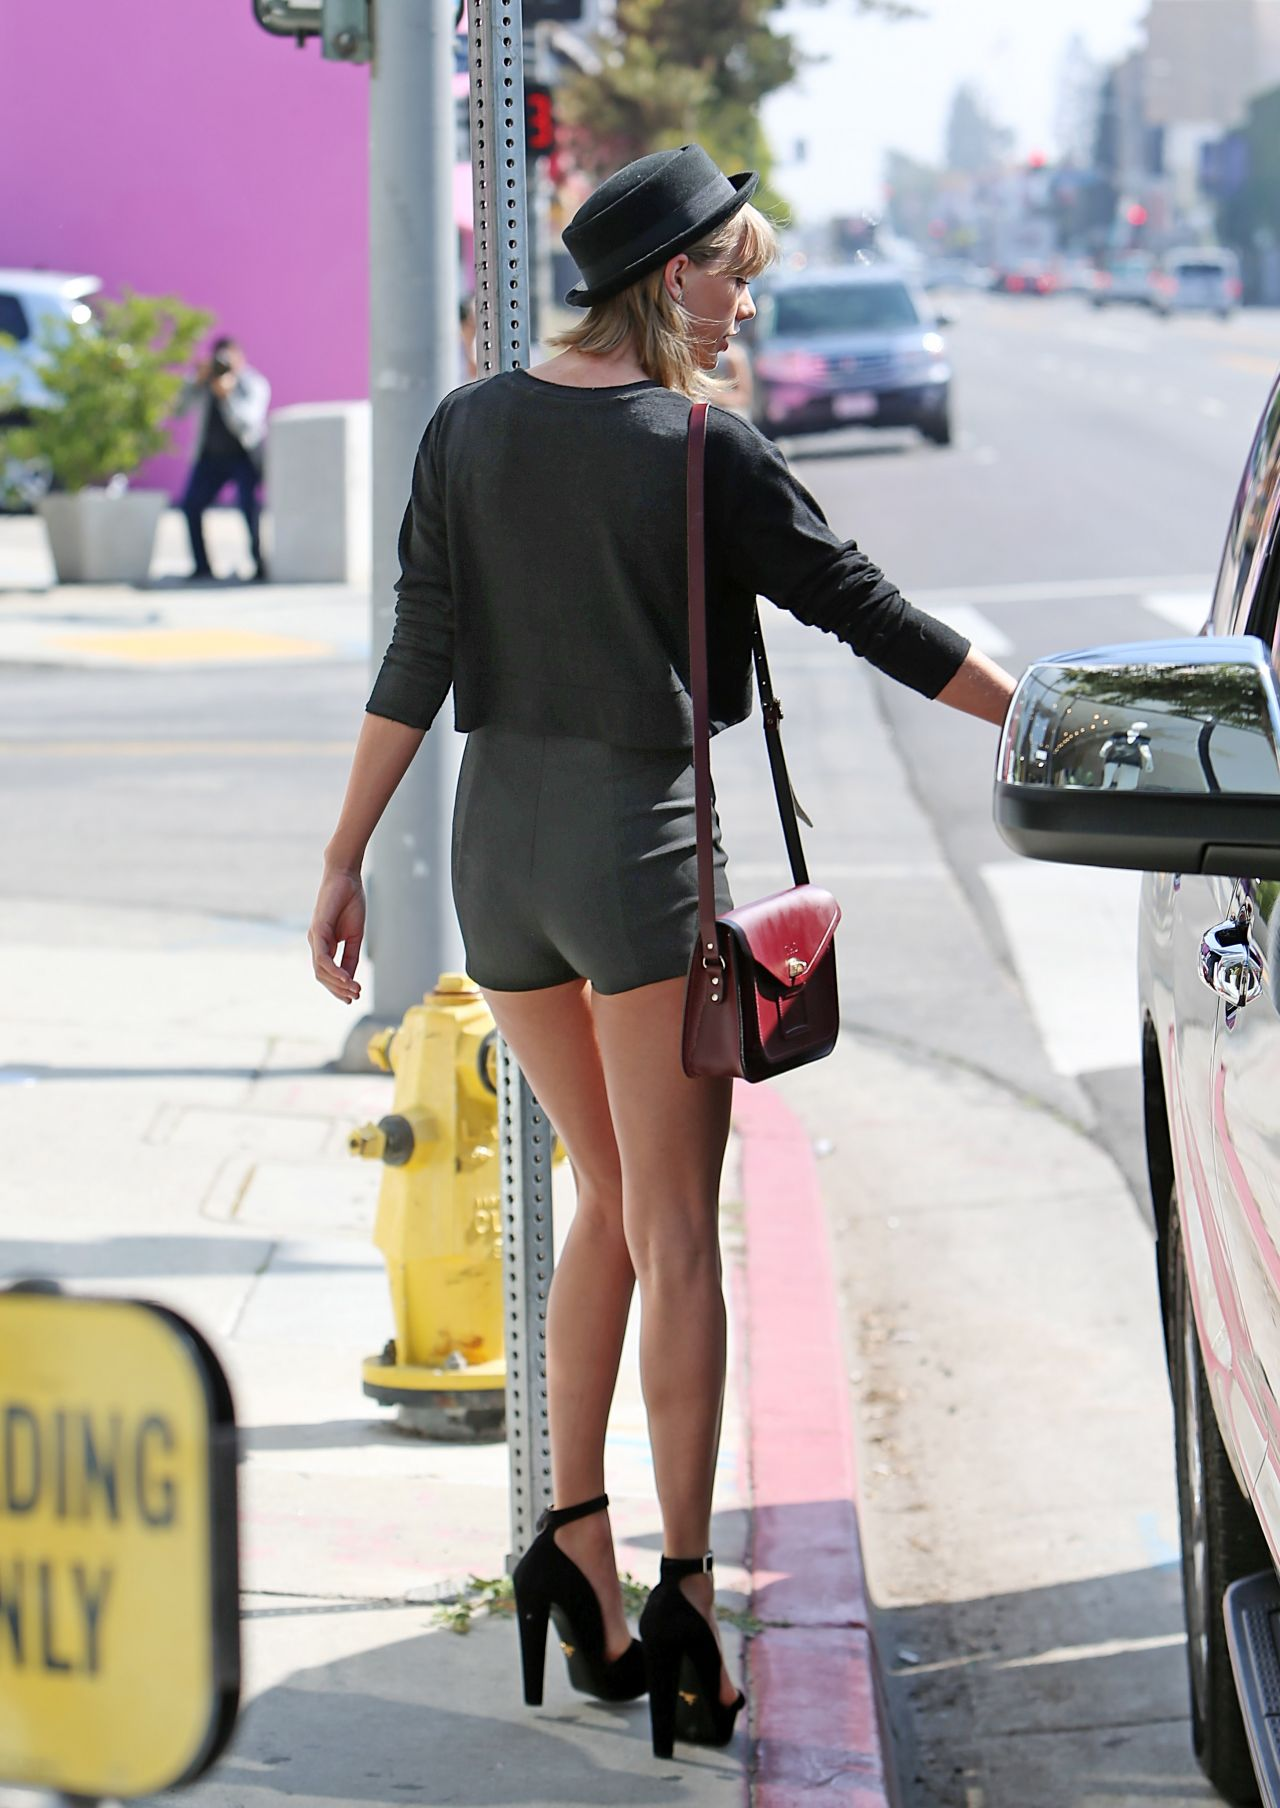 Taylor Swift Leggy in Shorts  Out in LA March 2015